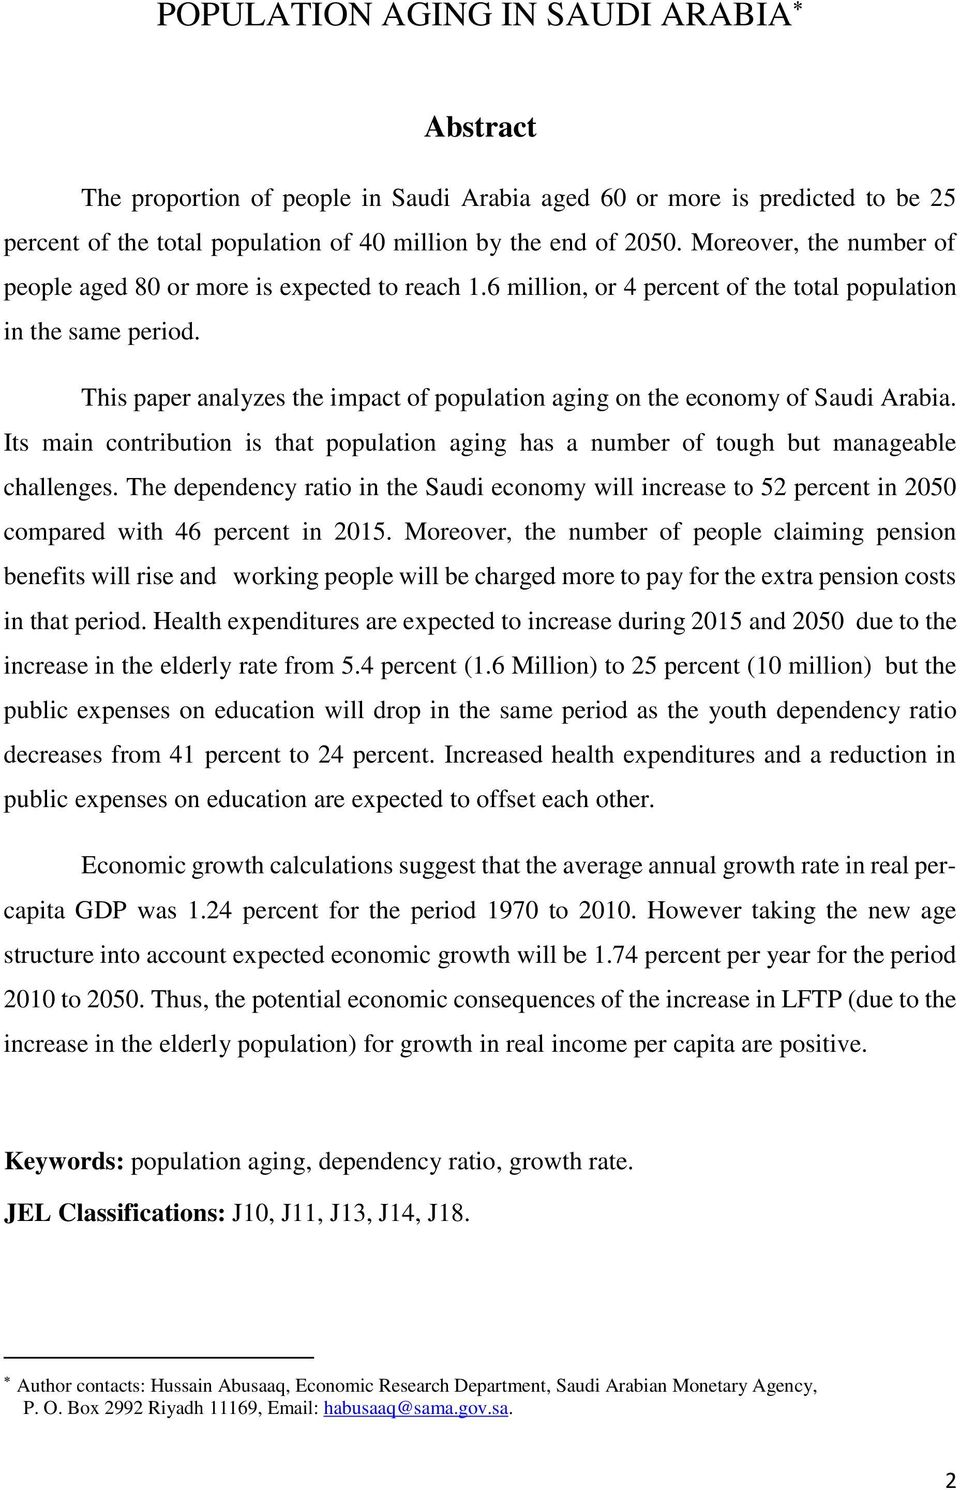 This paper analyzes the impact of population aging on the economy of Saudi Arabia. Its main contribution is that population aging has a number of tough but manageable challenges.